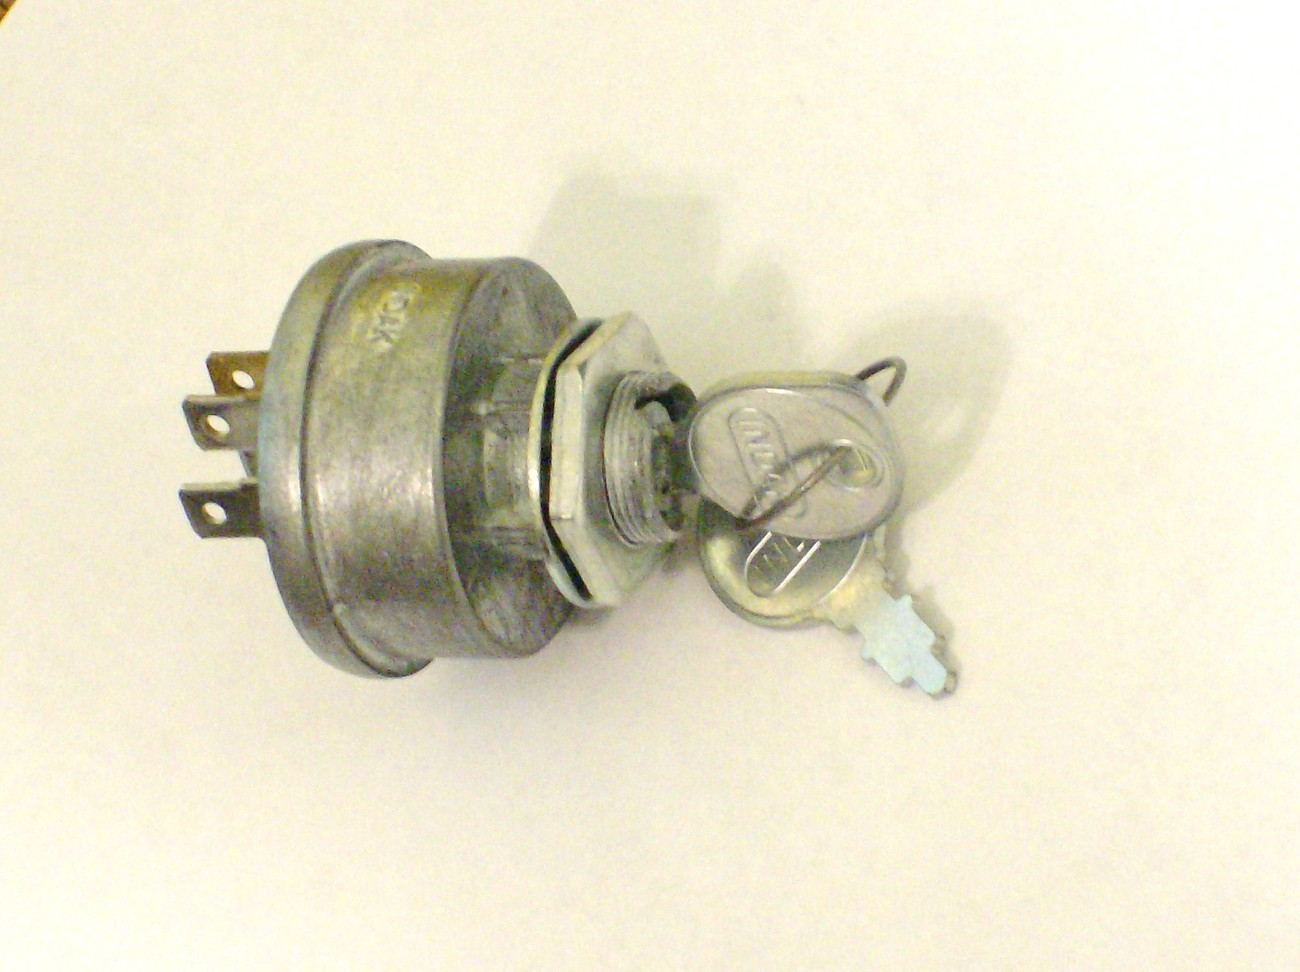 Toro and Lawn Boy ignition starter switch 230660, 700172, 741308